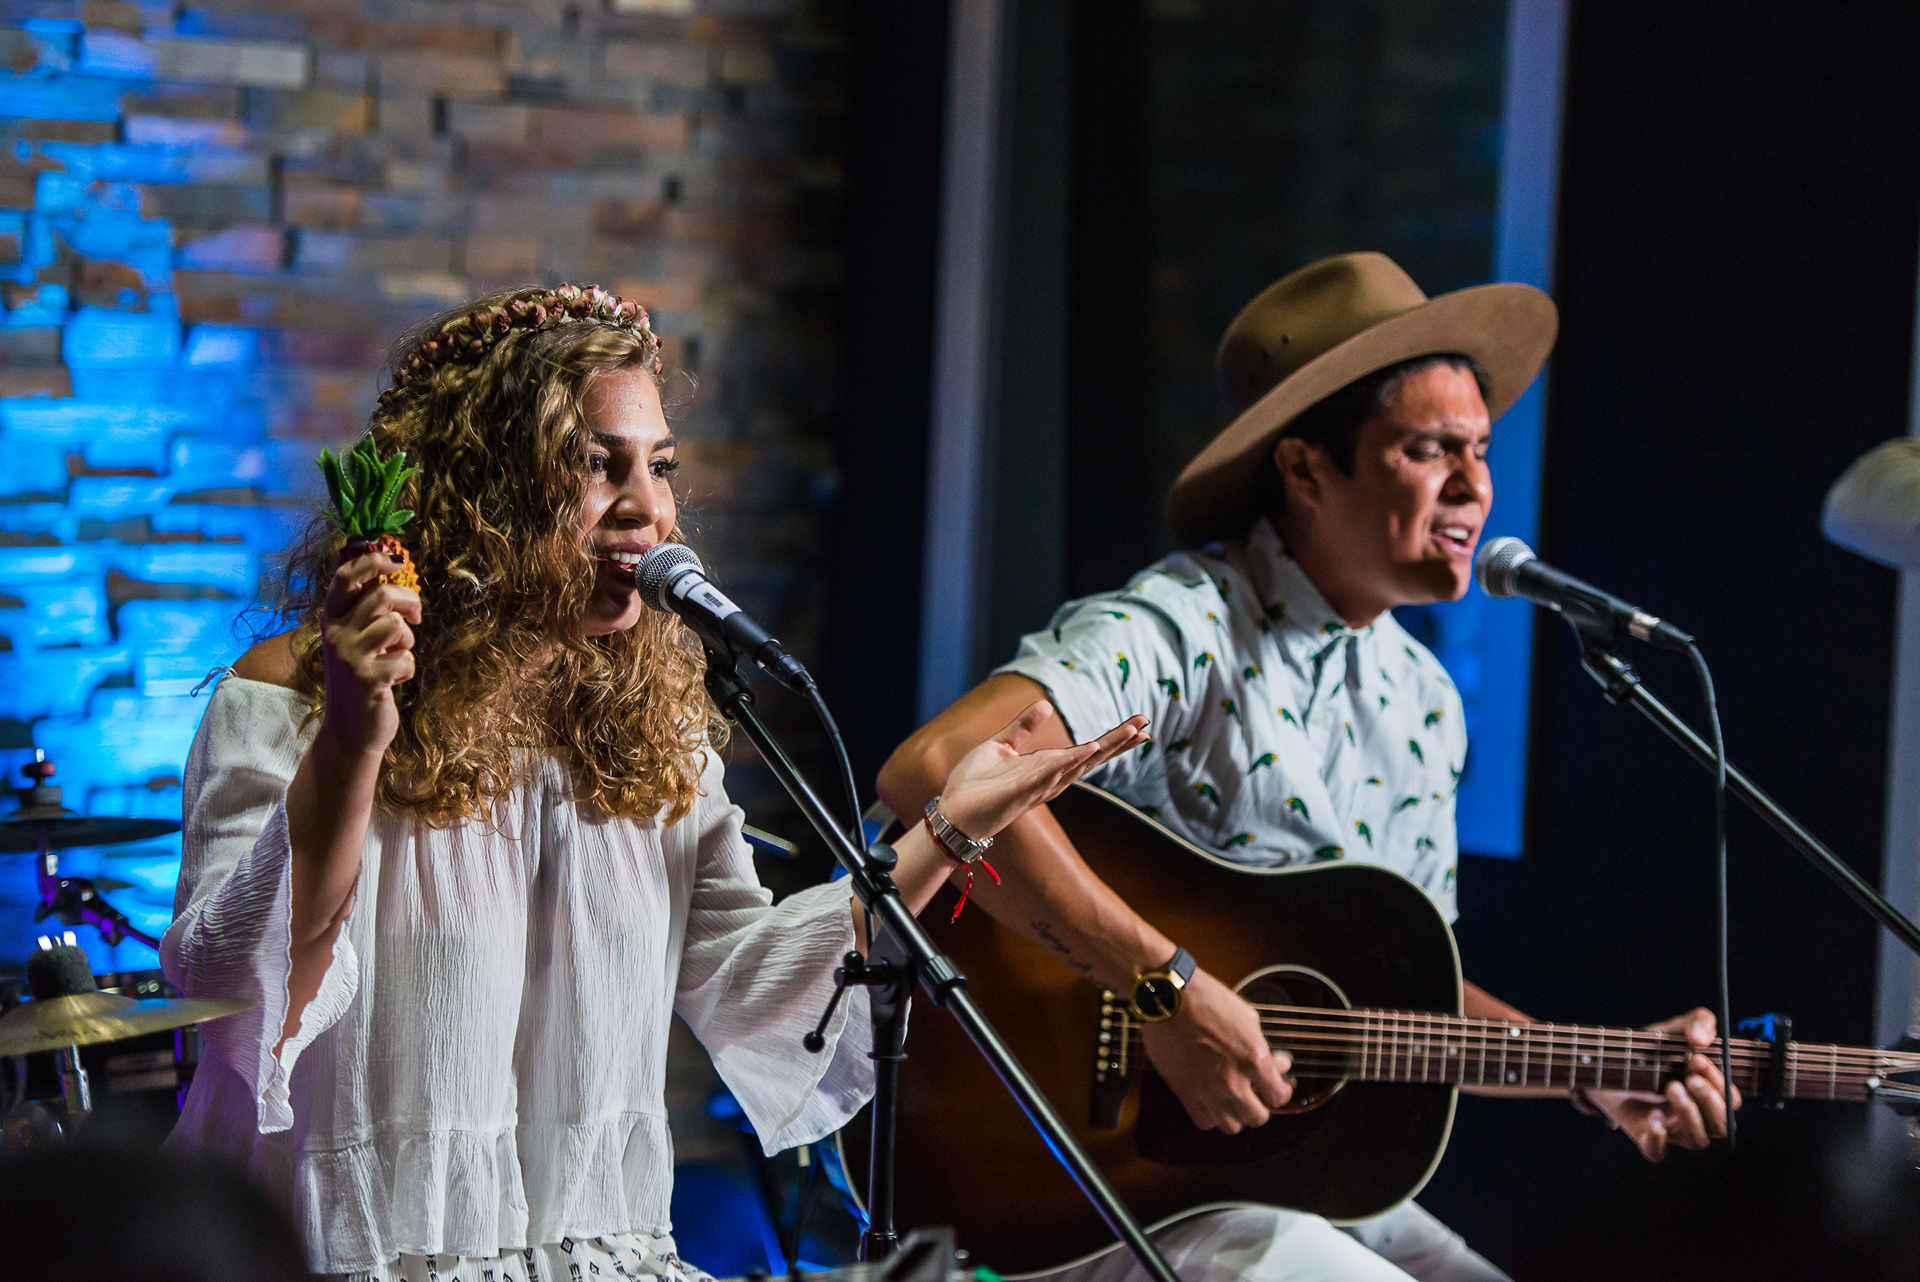 Periko & Jessi Leon, Latin Grammy Nominee Best New Artist closed the event with an acoustic performance © Ford Motor Company